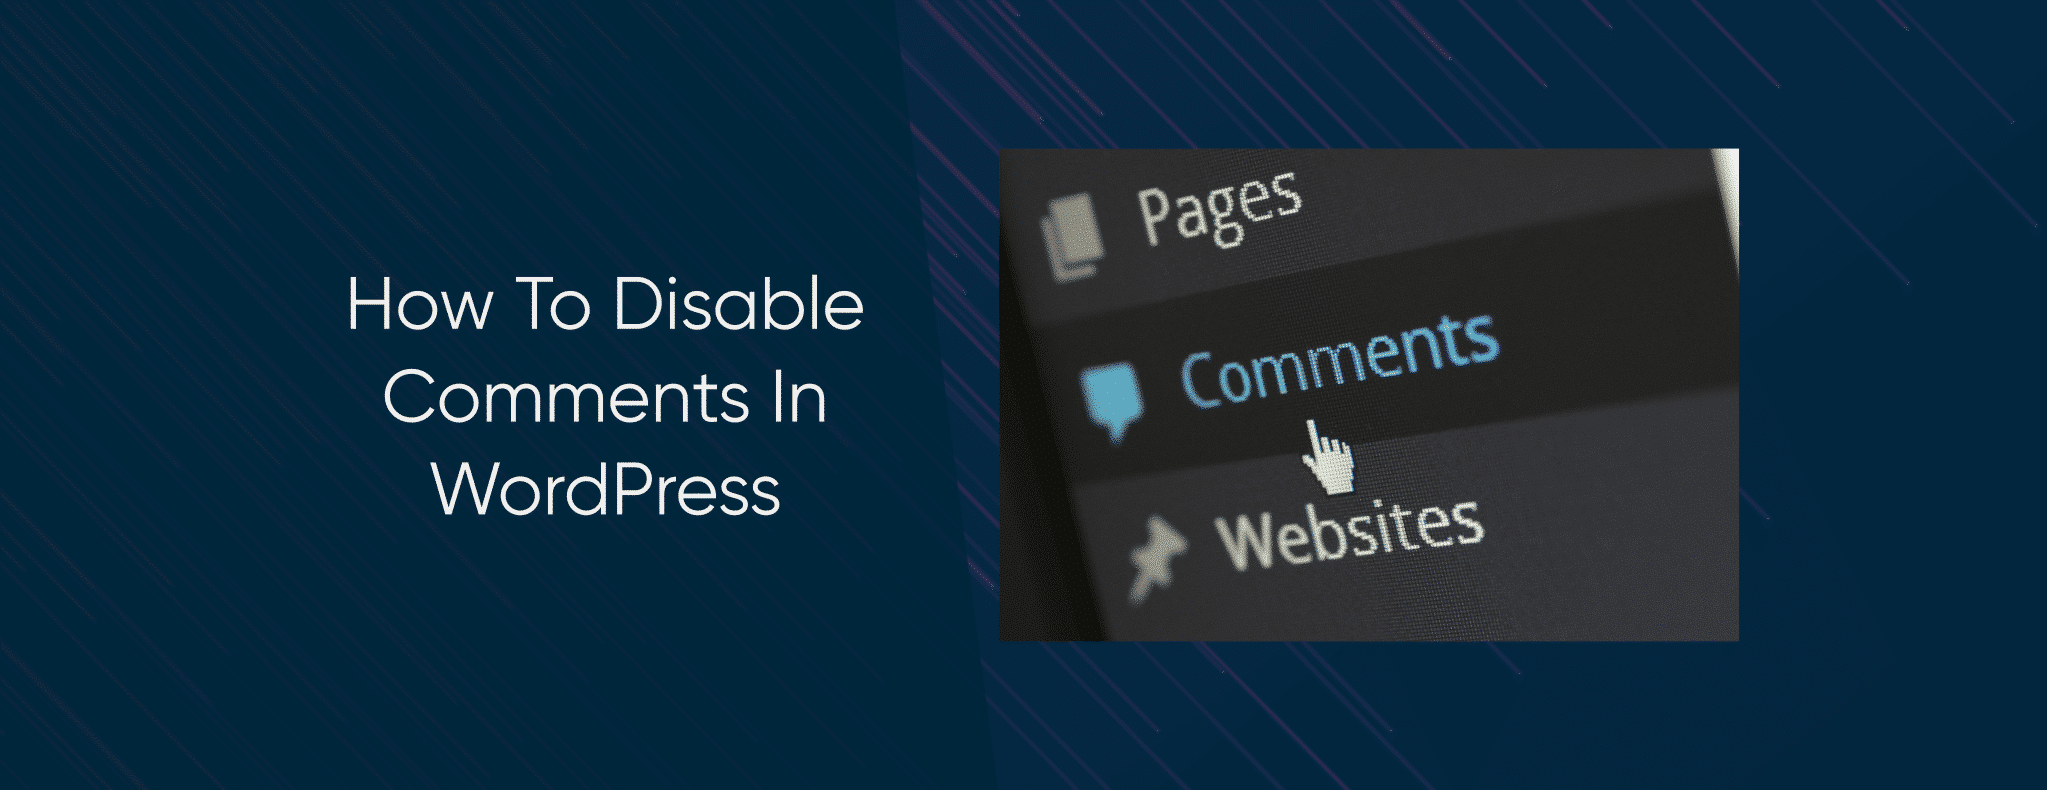 WordPress Care Plans Disable Comments In WordPress